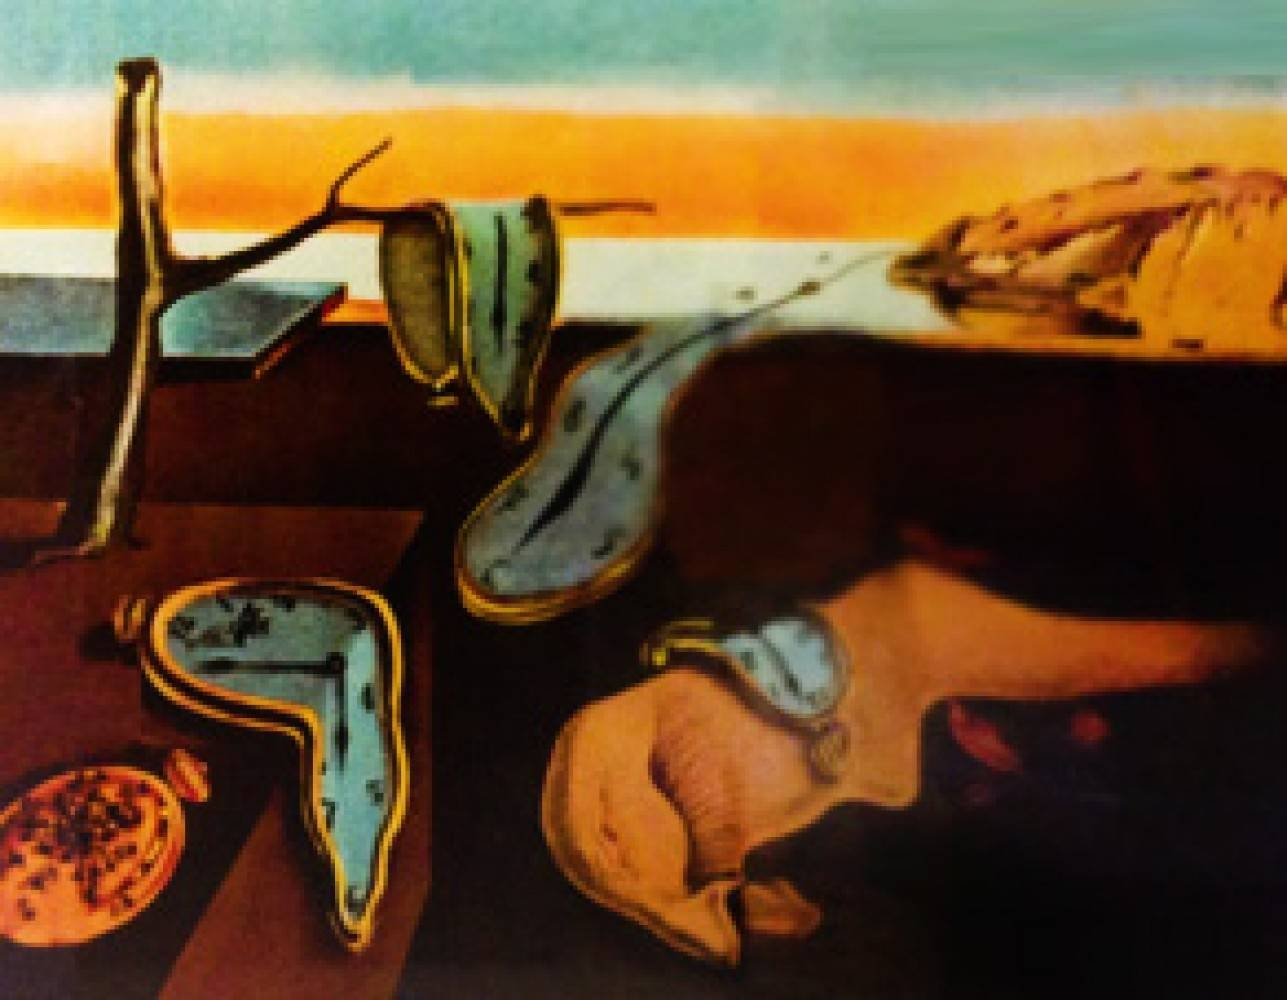 Salvador Dali Art For Sale Within Latest Salvador Dali Wall Art (View 15 of 20)